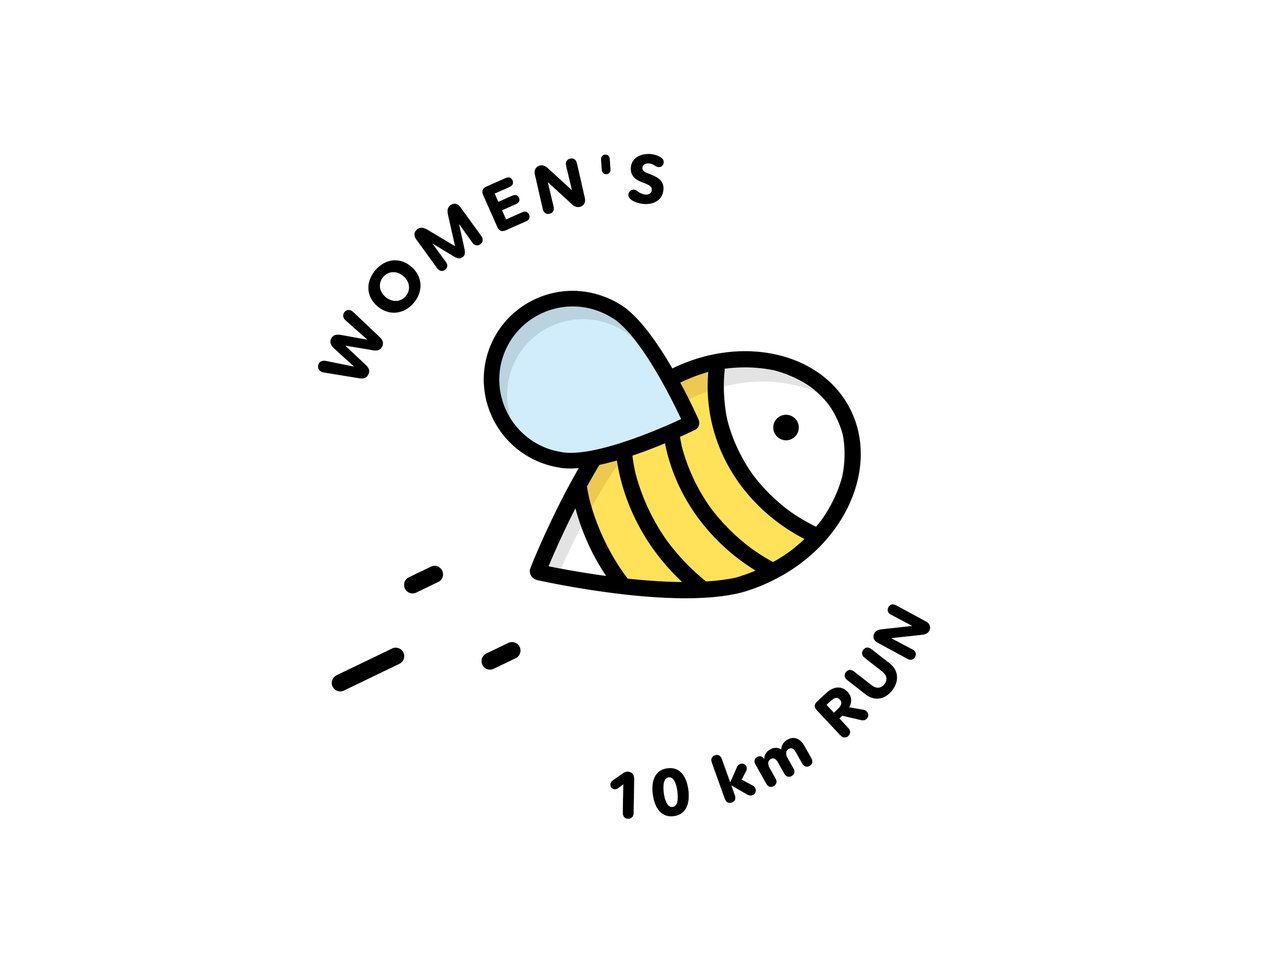 Womens 10 km RUN